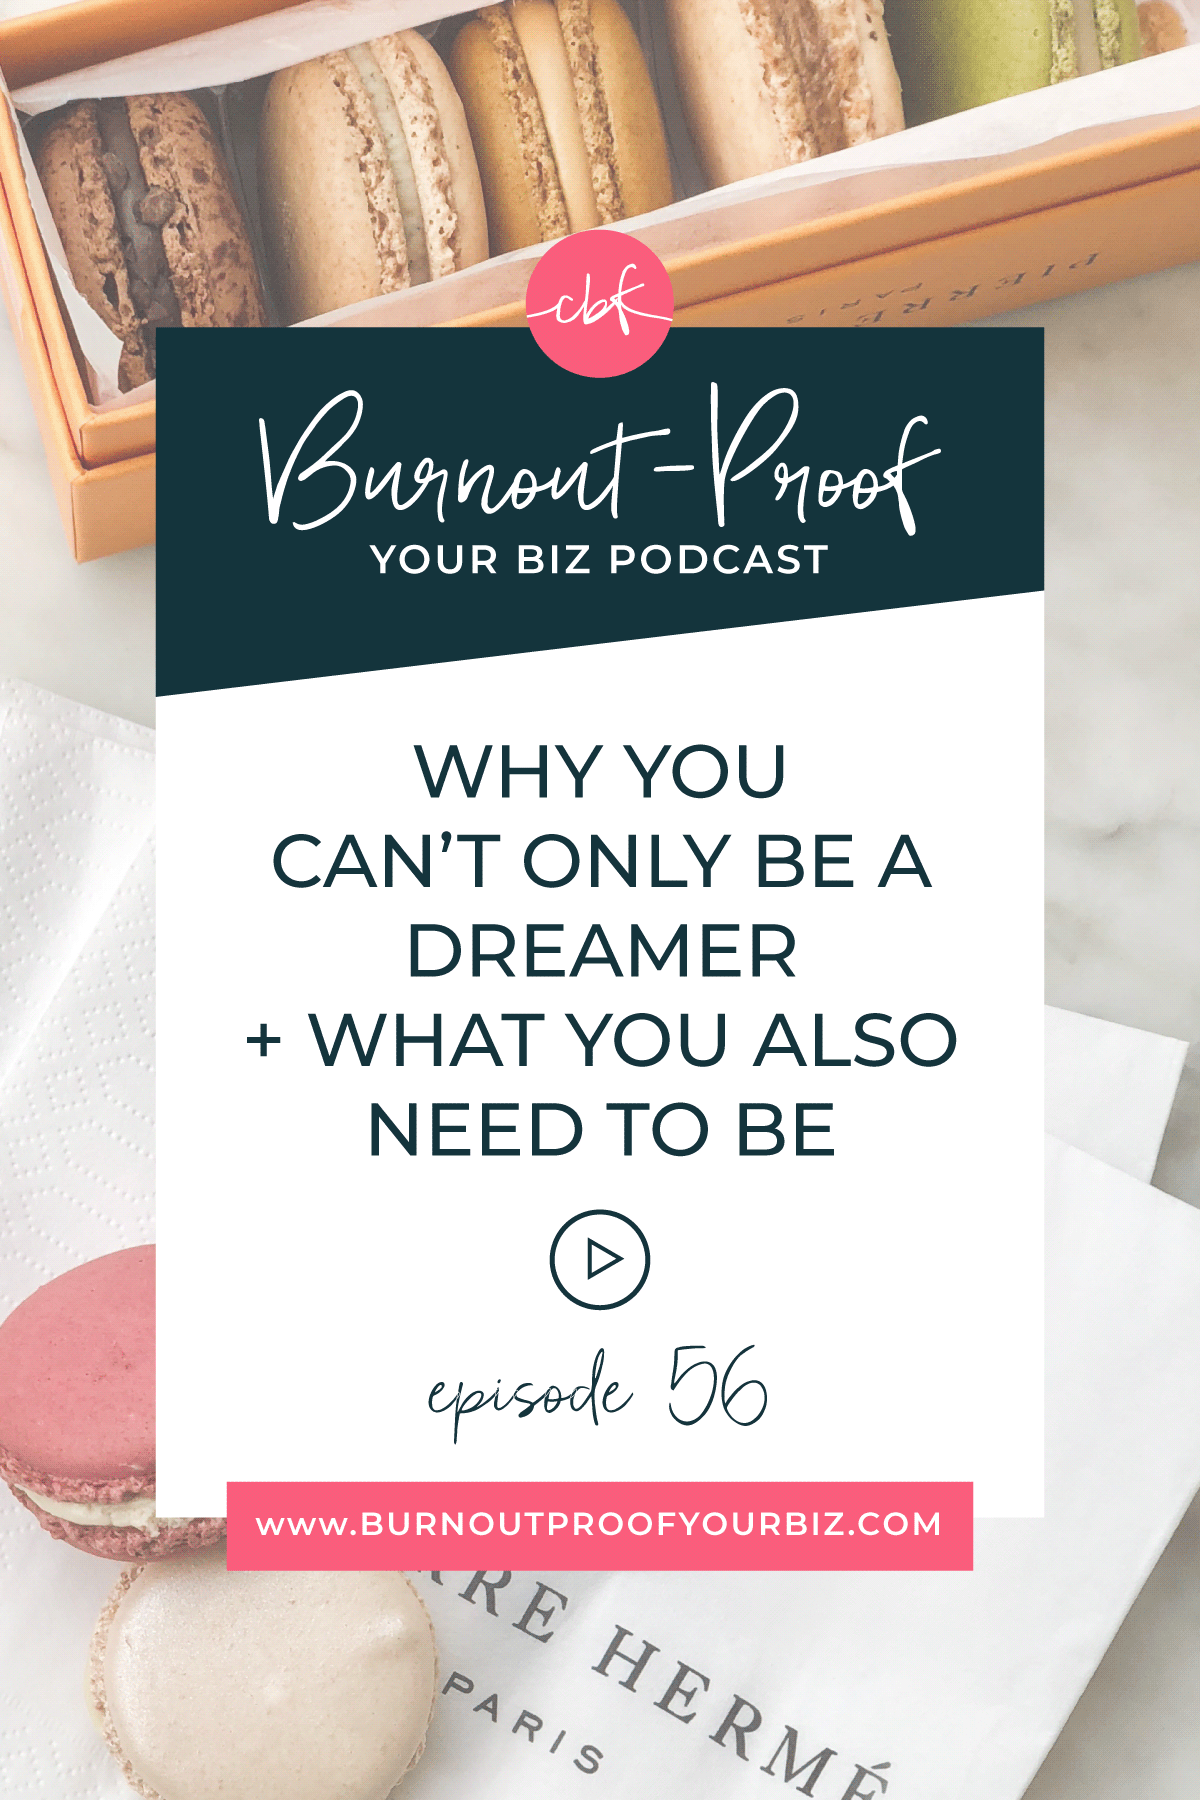 WHY YOU CAN'T ONLY BE A DREAMS + WHAT YOU ALSO NEED TO BE on the Burnout-Proof Your Biz Podcast with Chelsea B Foster | Episode 056 - The Most Important Part of Running Your Own Business | Learn how to run your biz and live your dream life on your own terms without the fear of burnout.  | Business Coach | Workflow & Productivity Specialist | Implementation vs. Hustle | Hustle Mode | How to get out of Hustle Mode | Why Another Course Won't Help | Courses Aren't Helping - Now What | Hold Yourself Accountable | Learn then Take Action | Creative Entrepreneur | Creative Influencer | Productivity | Dream life | Freedom Lifestyle | Having a business that supports your dream life |